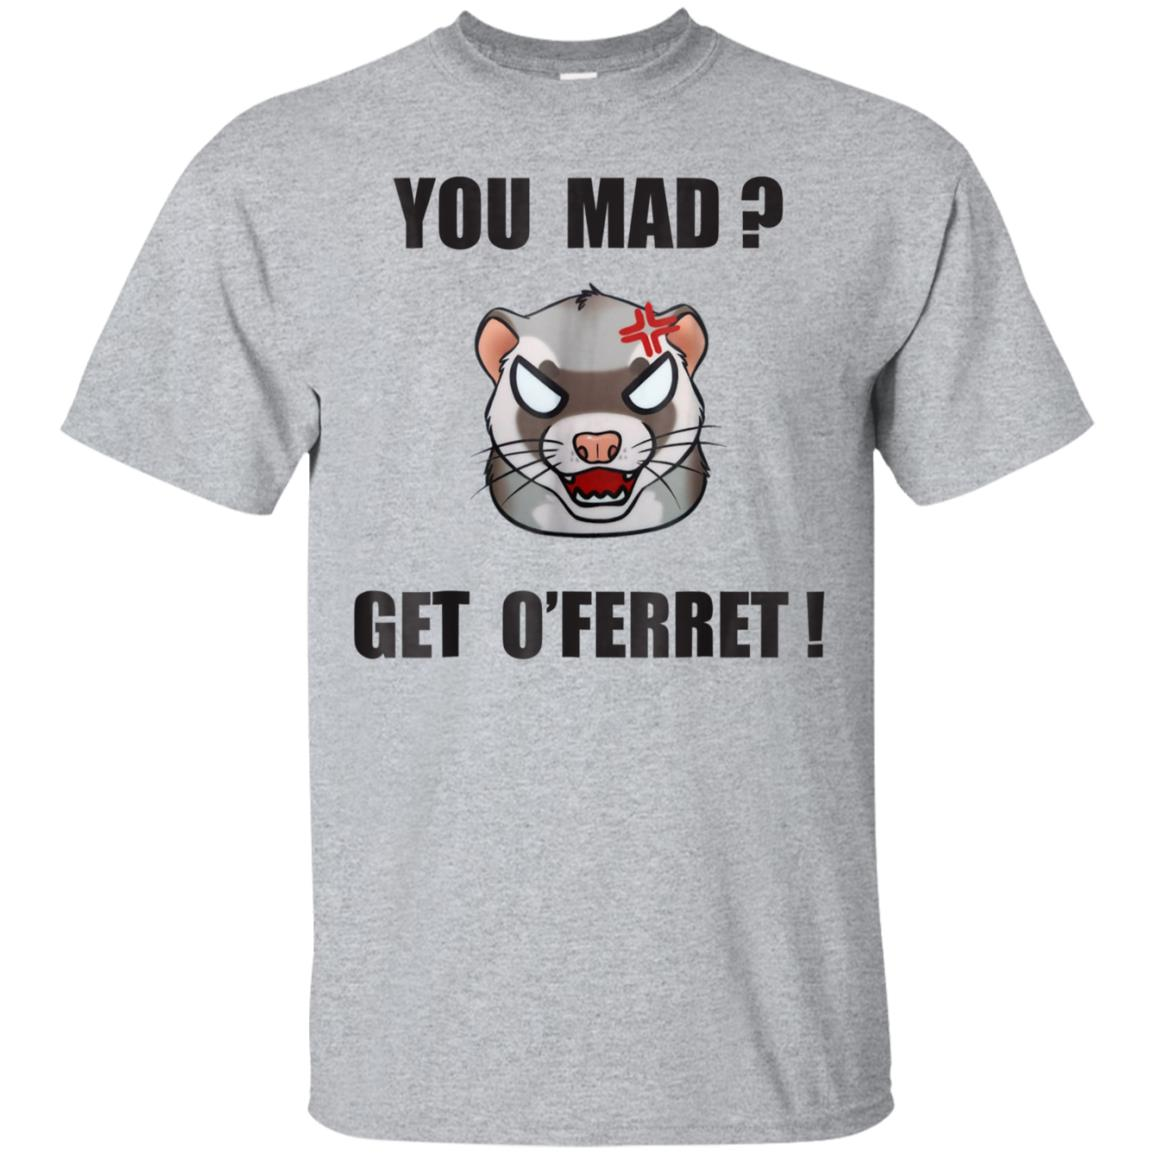 You Mad Get O'Ferret  Funny Joke Pun Ferret Graphic T Shirt 99promocode